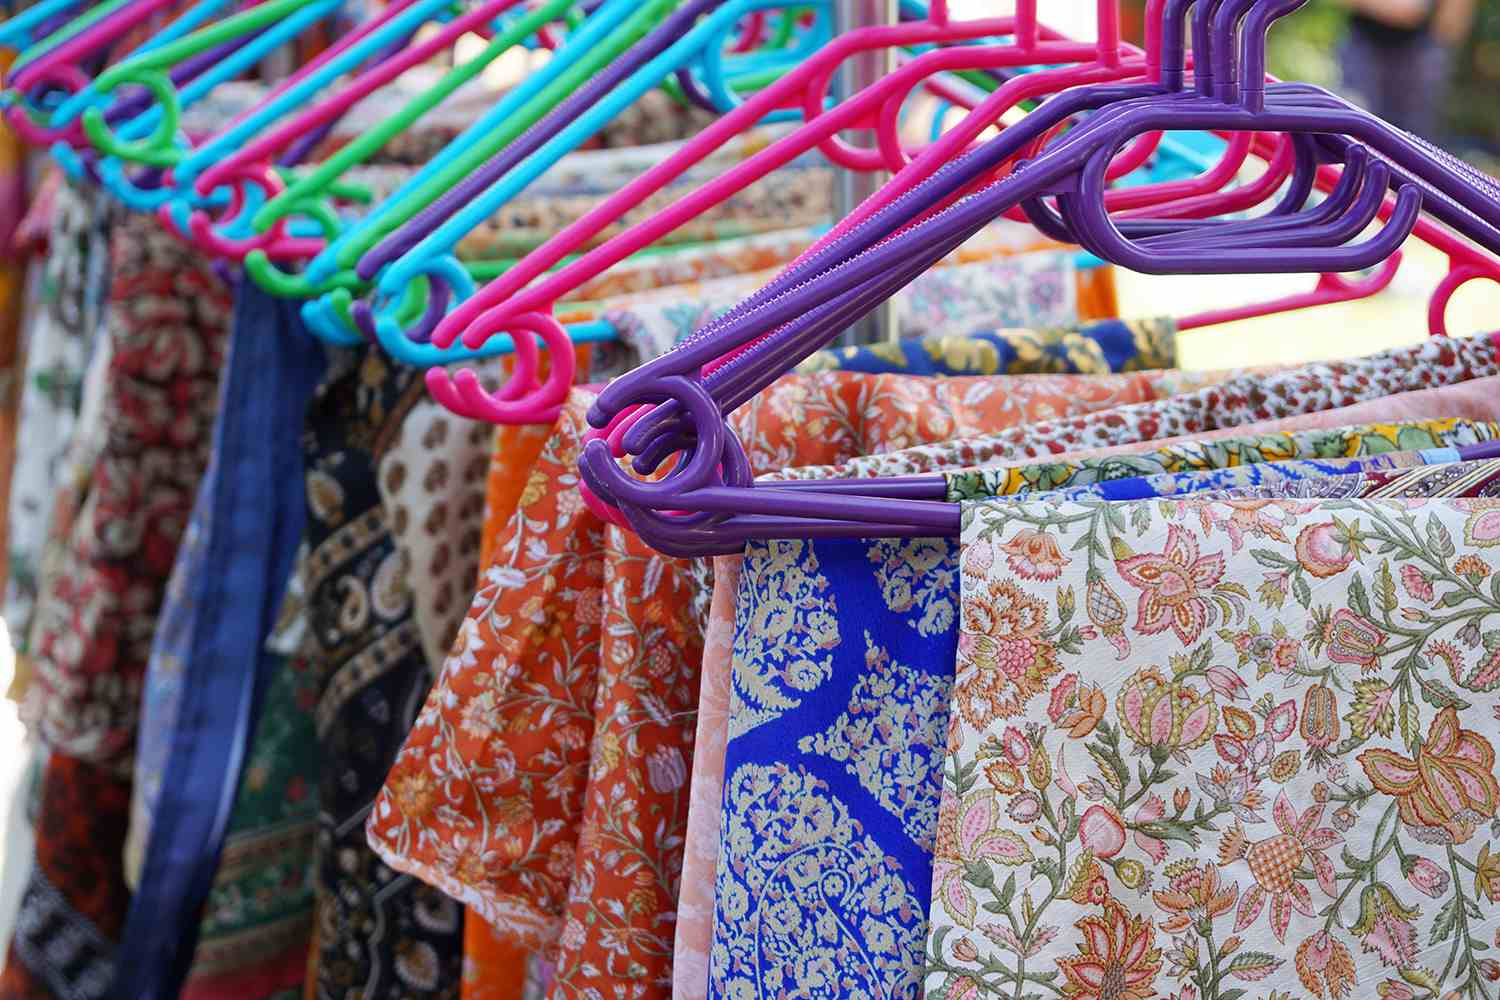 Close-Up Of Colorful Patterned Clothes Hanging On Coathangers At Market